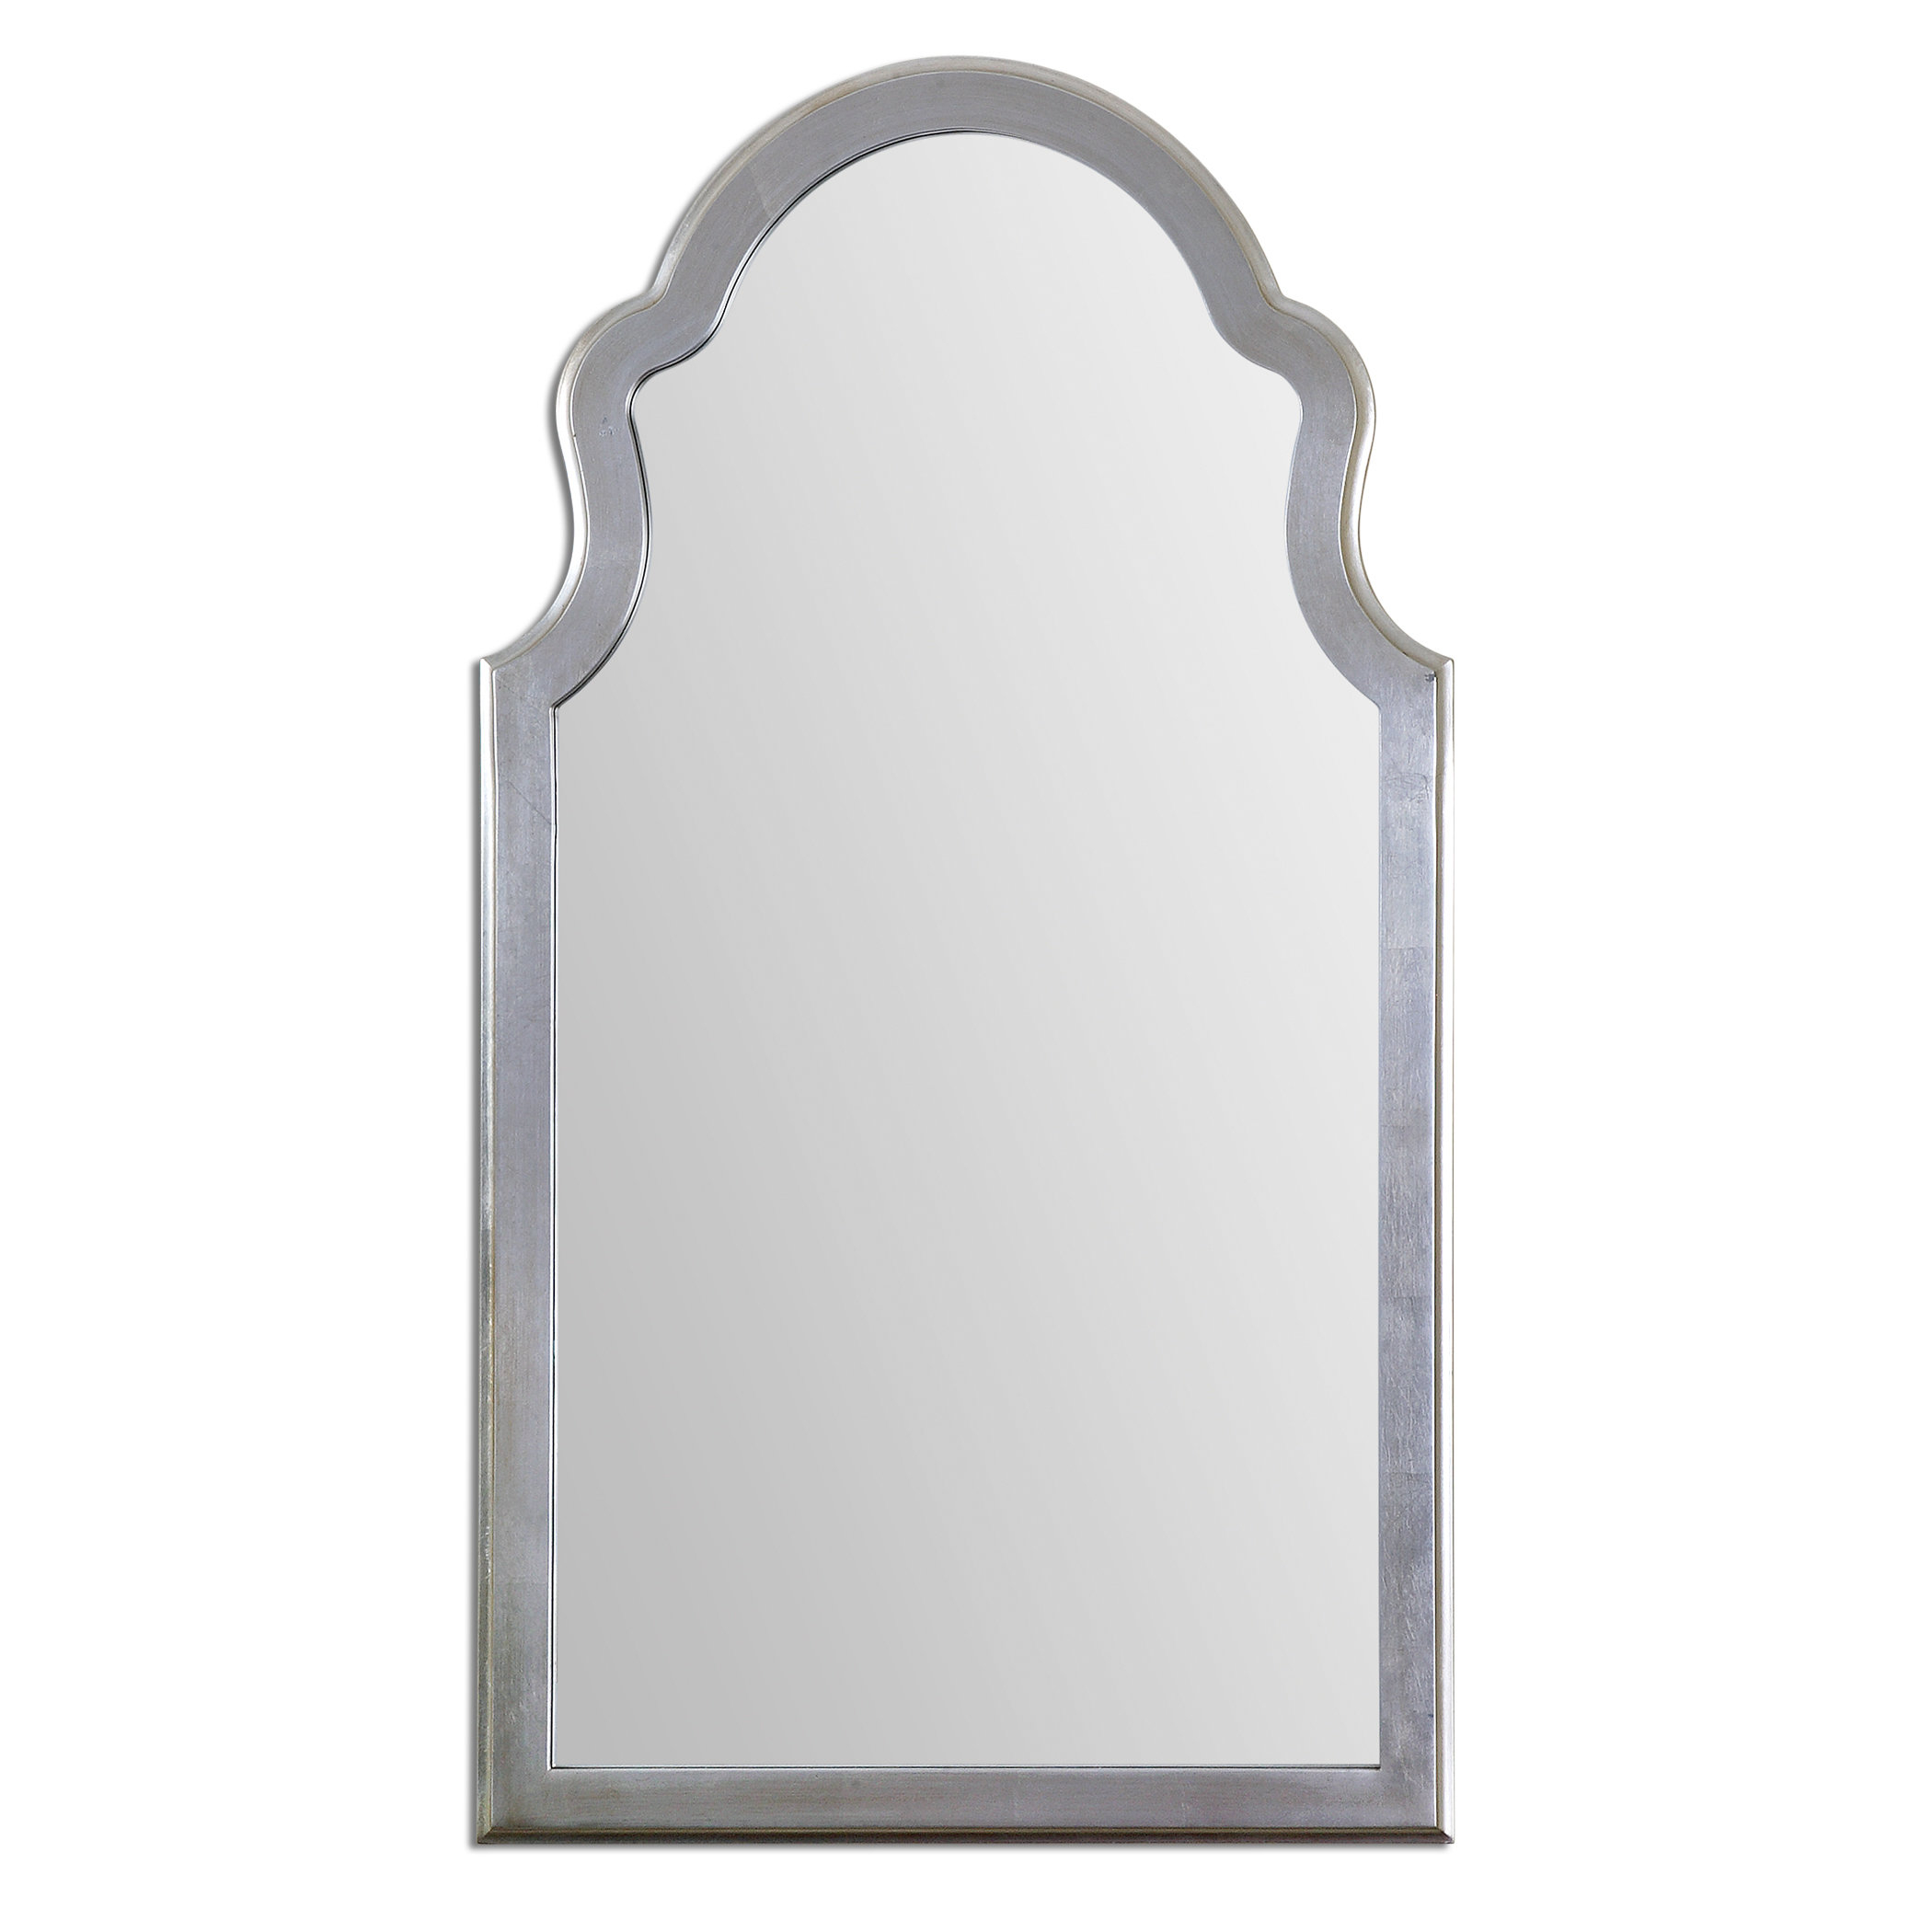 Farmhouse & Rustic Arch / Crowned Top Wall & Accent Mirrors regarding Dariel Tall Arched Scalloped Wall Mirrors (Image 11 of 30)